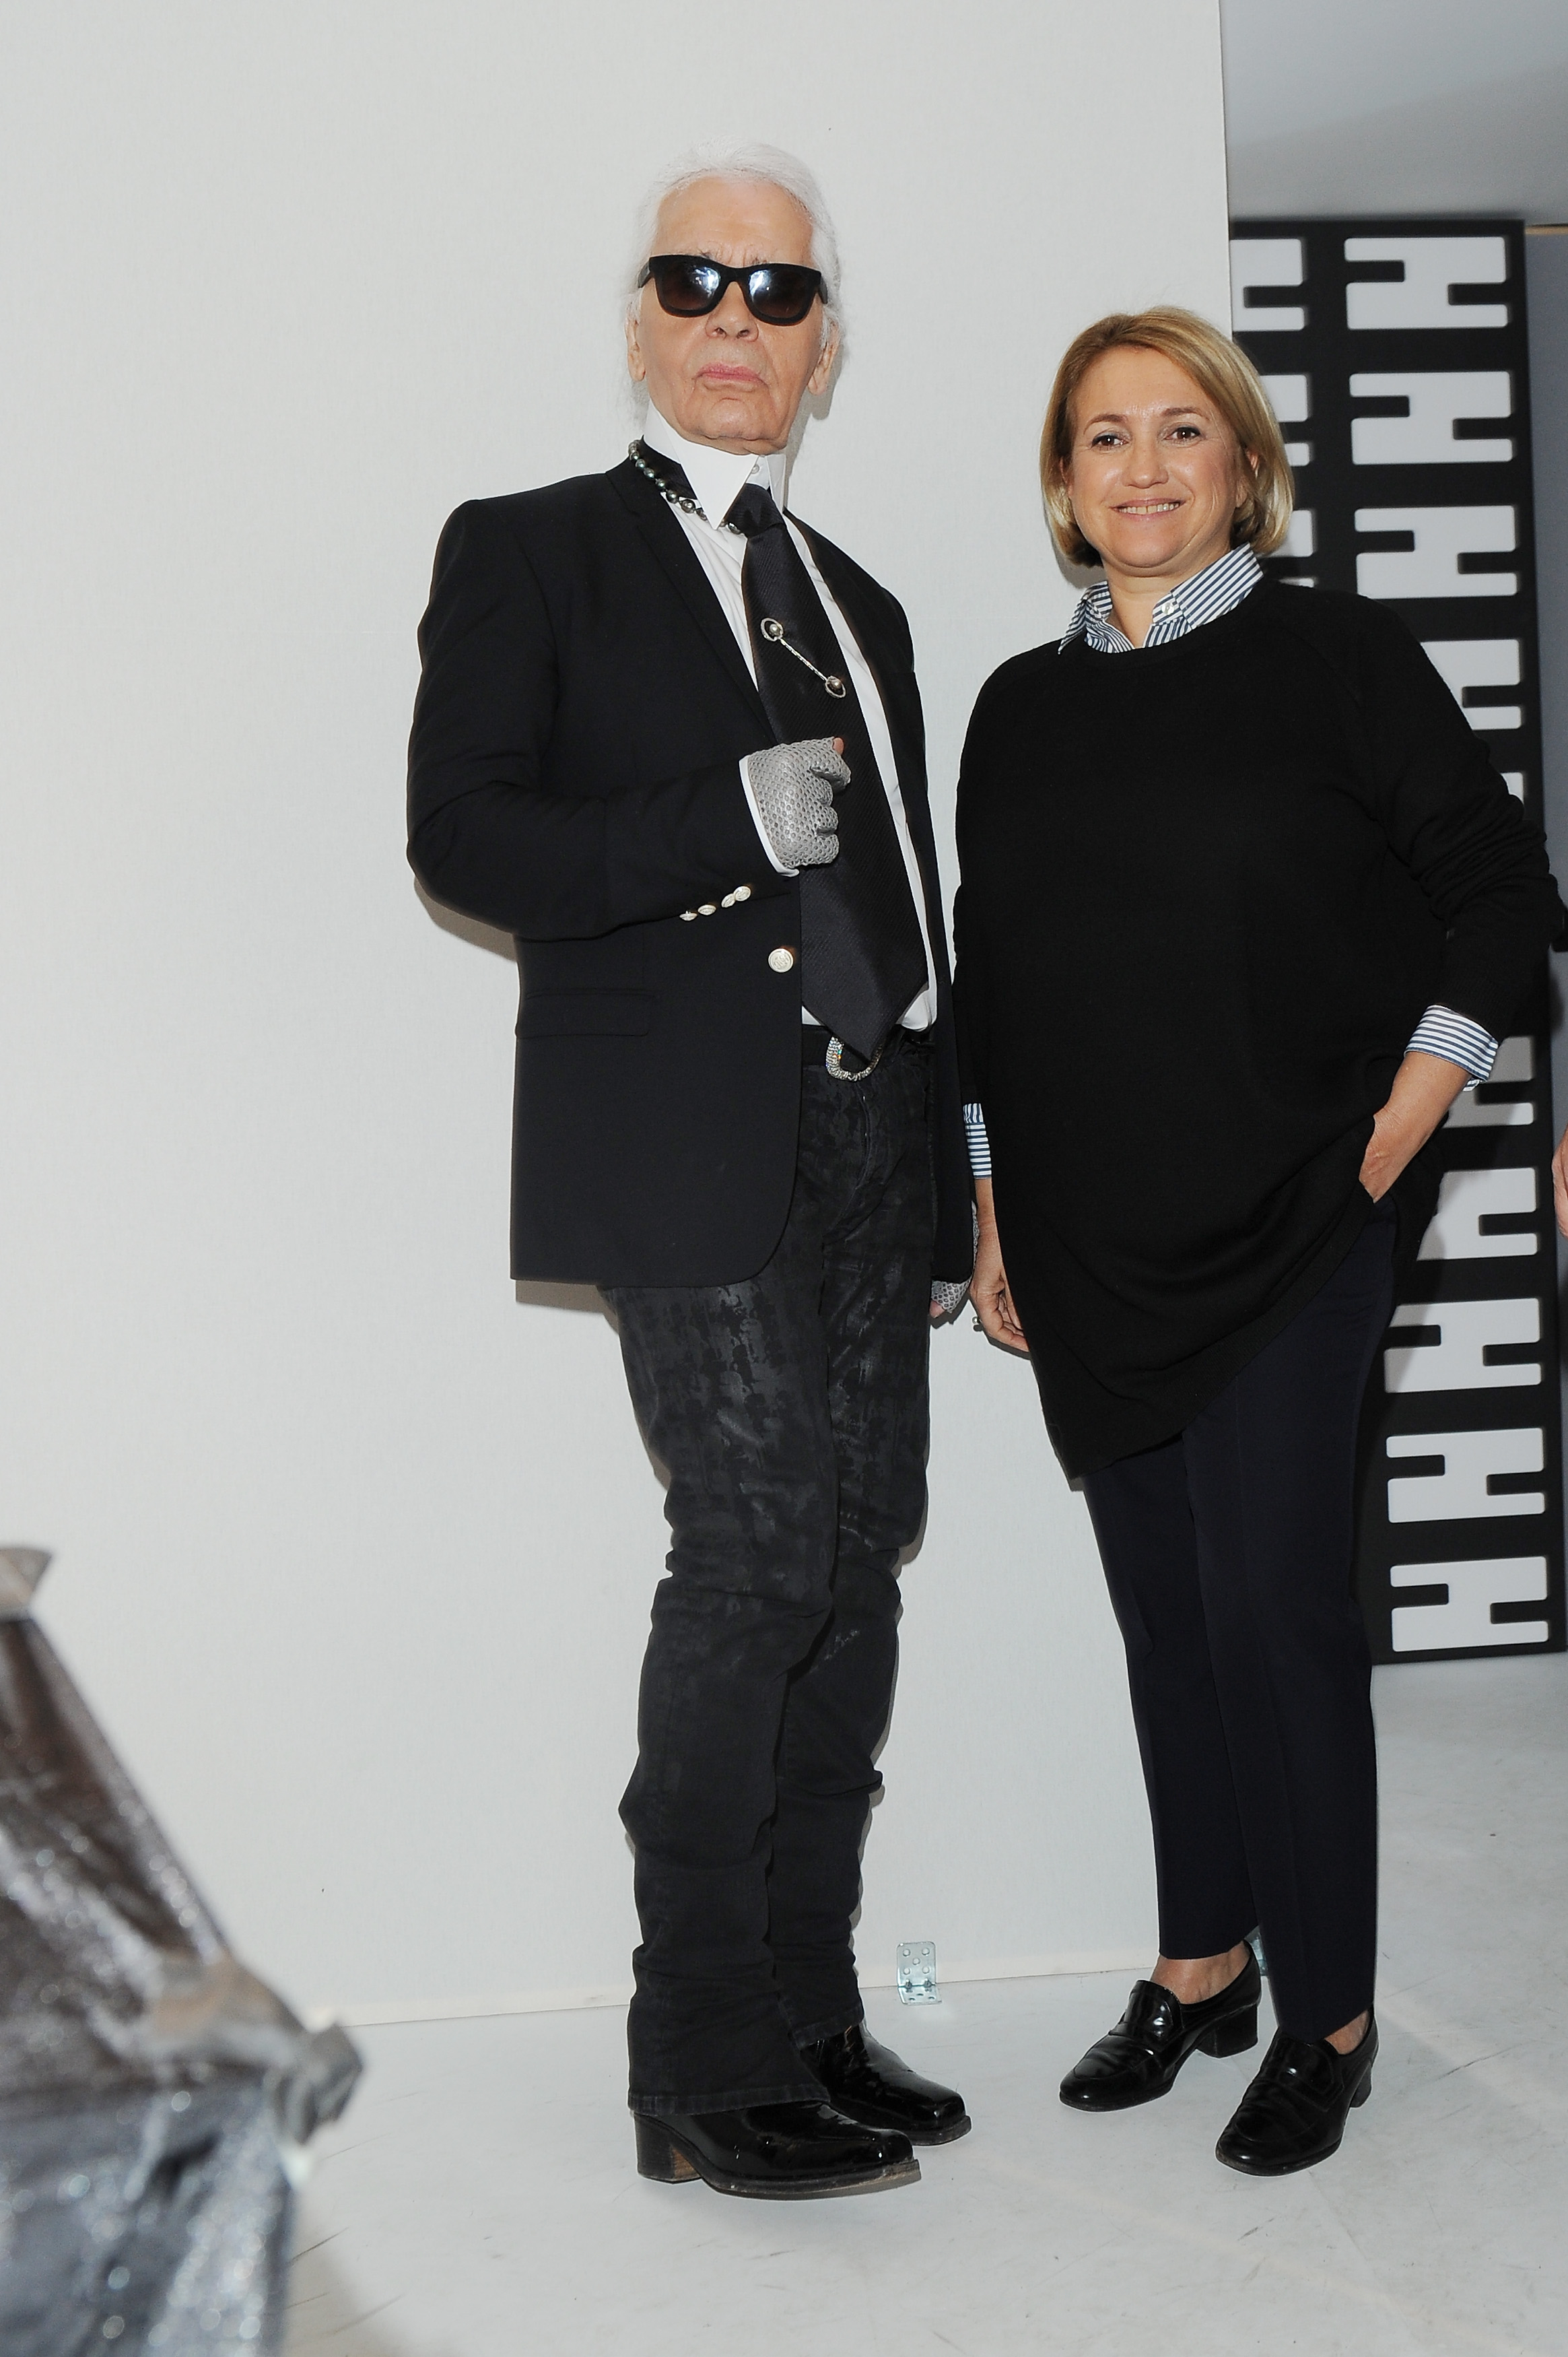 Karl Lagerfeld and Silvia Venturini Fendi at th